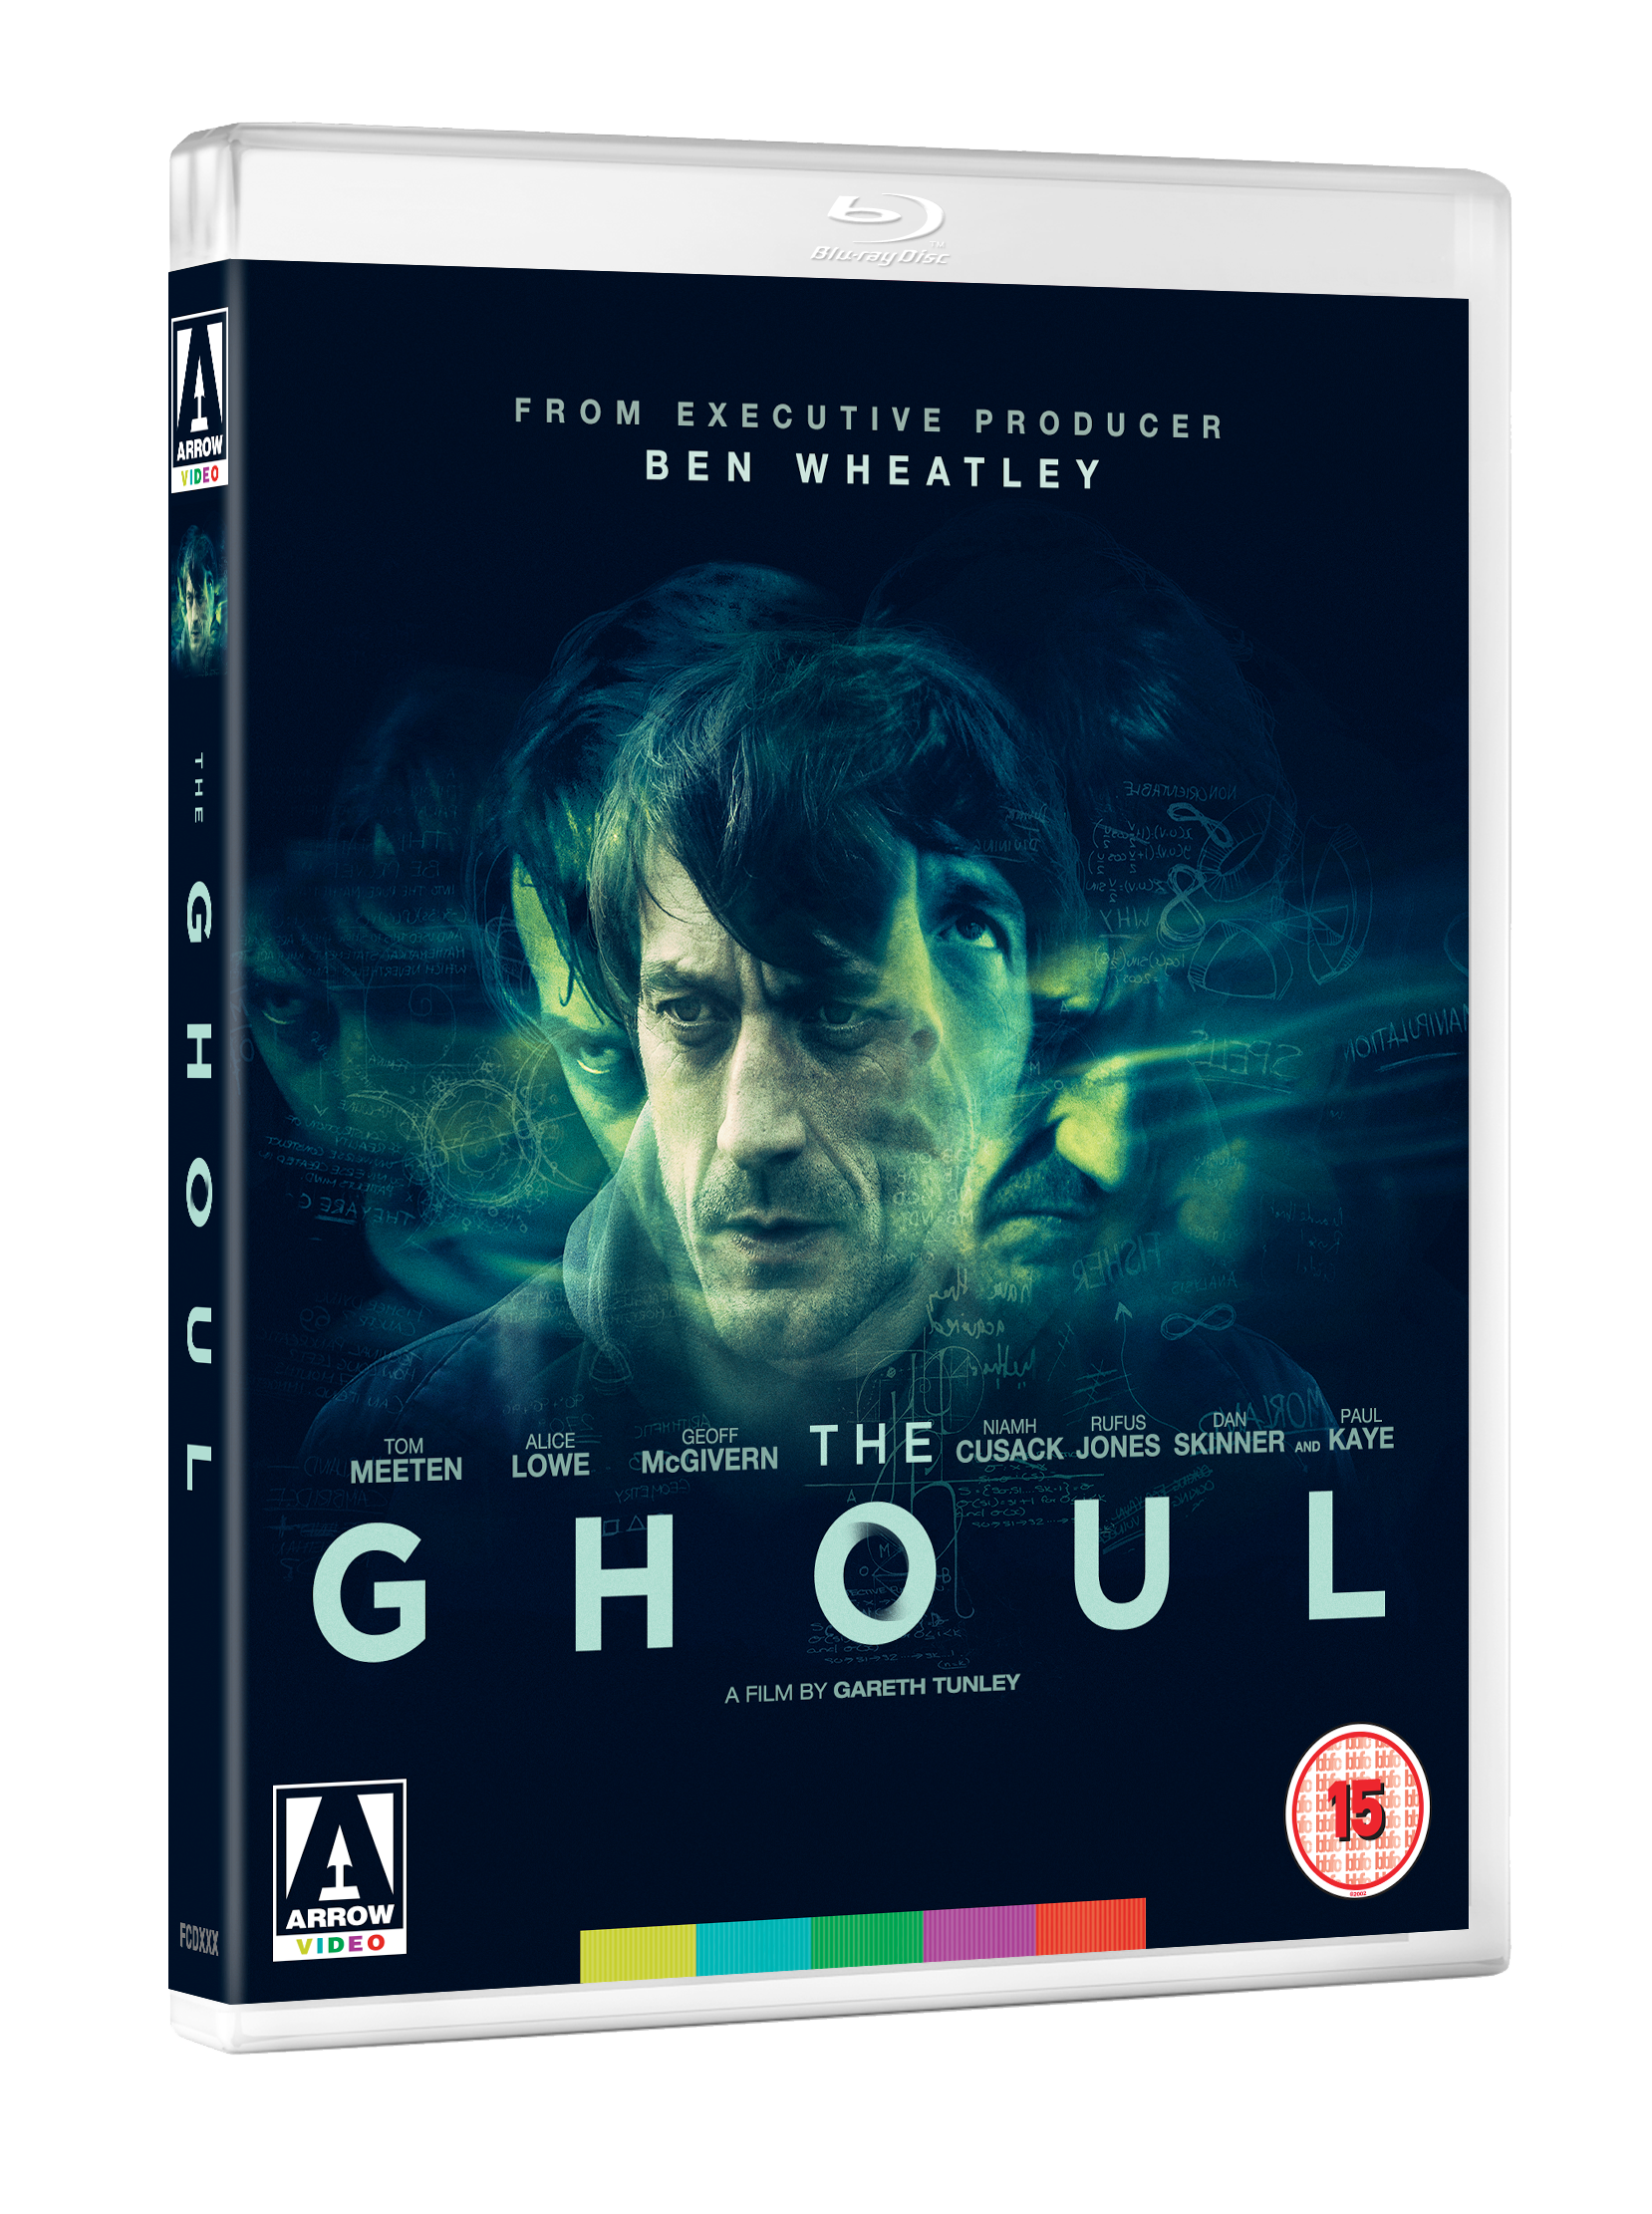 THE GHOUL 3D BD September 2017 line up announced by Arrow Video